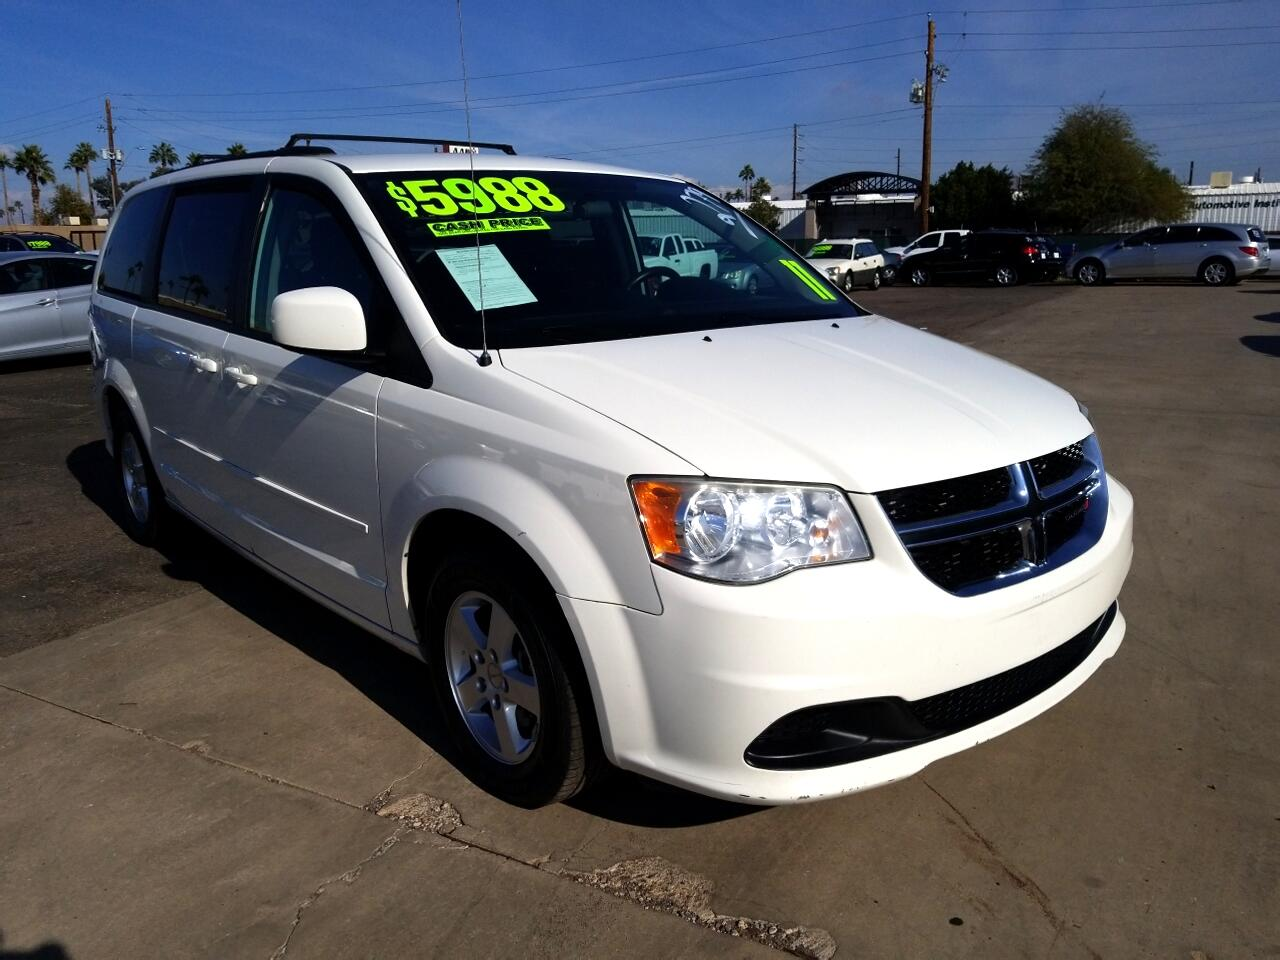 used 2011 dodge grand caravan mainstreet for sale in phoenix az 85301 new deal pre owned autos. Black Bedroom Furniture Sets. Home Design Ideas